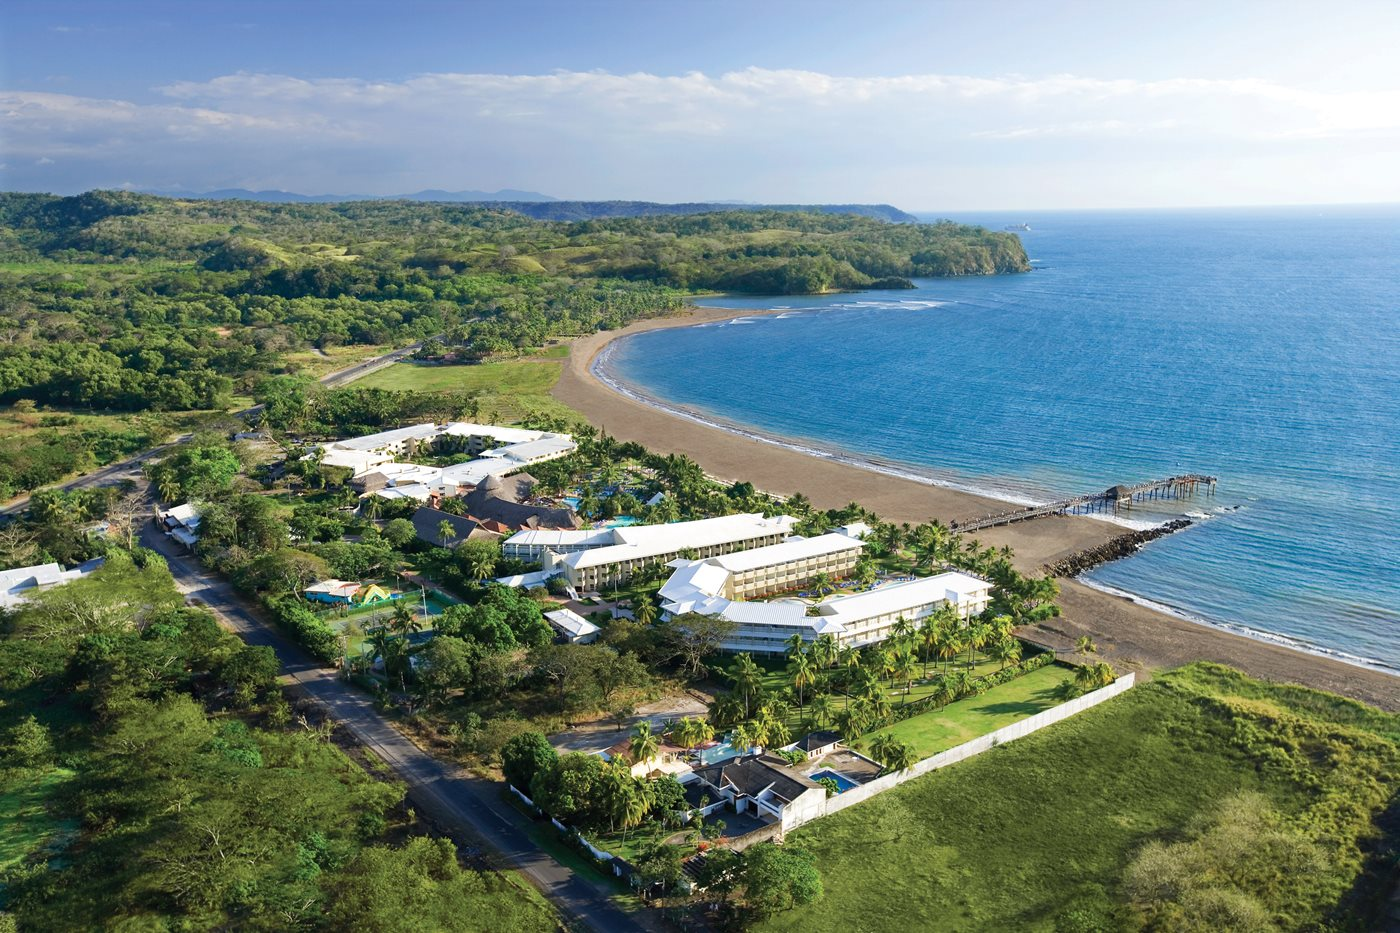 ede4e878c Fiesta Resort All Inclusive - Puntarenas